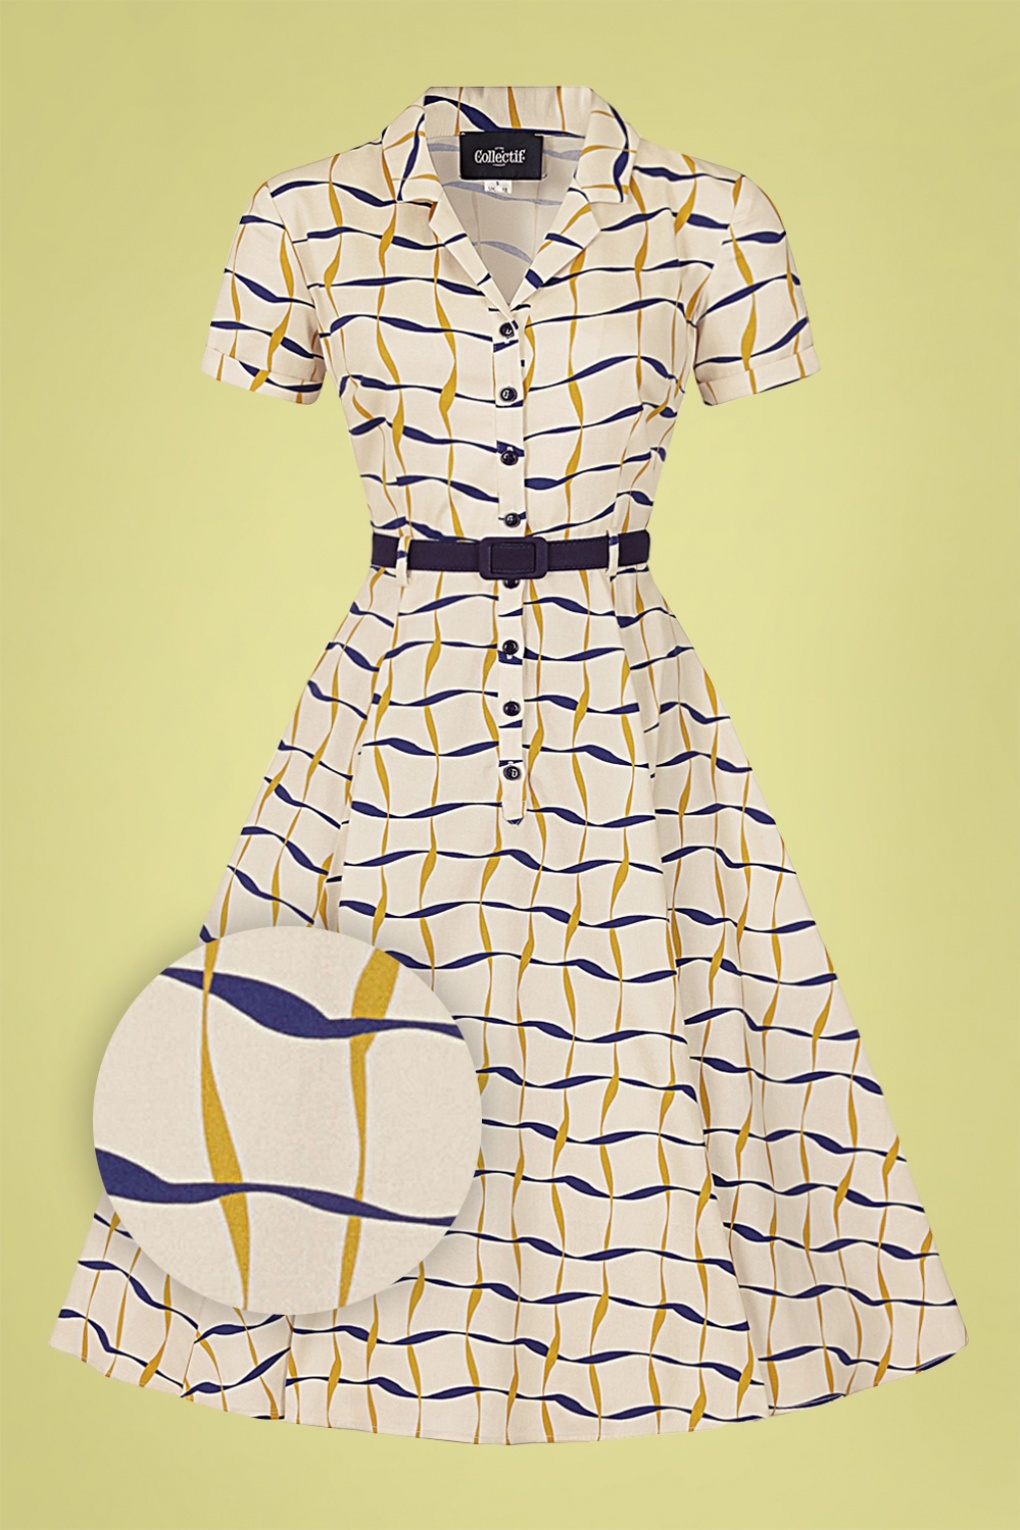 Vintage Shirtwaist Dress History 60s Caterina Ribbon Check Swing Dress in Cream £70.49 AT vintagedancer.com